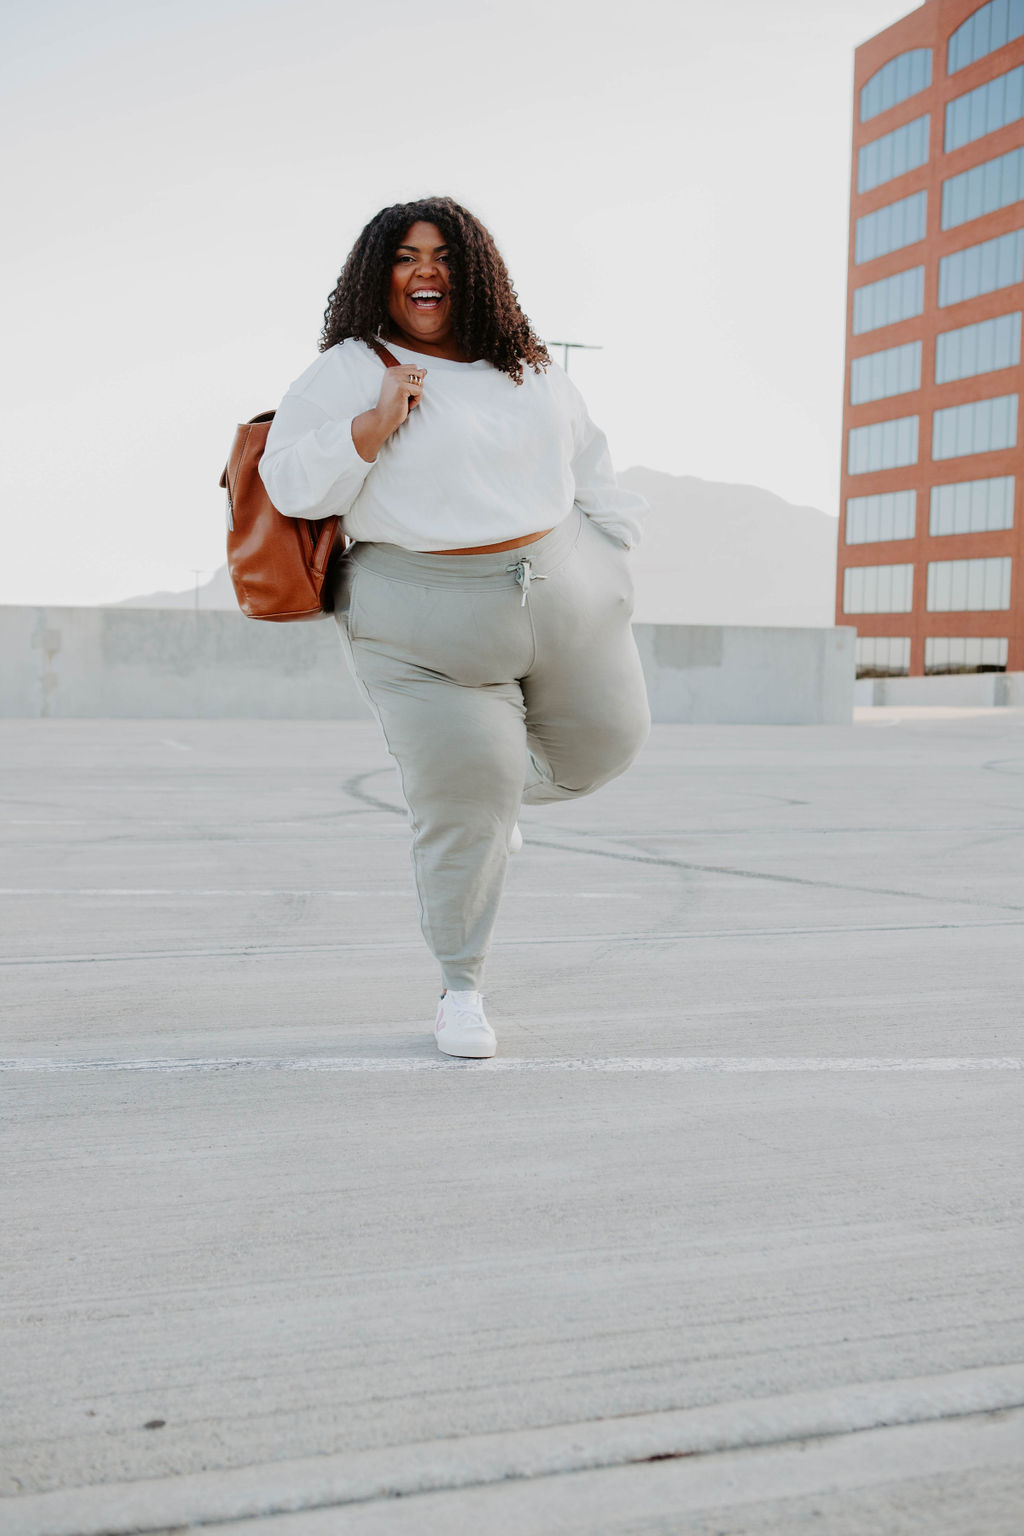 We're going all in on Athleta, obsessed w/ the Balance, Salutation & Recover joggers. They work for all occasions -- from casual WFH-wear to weekending.